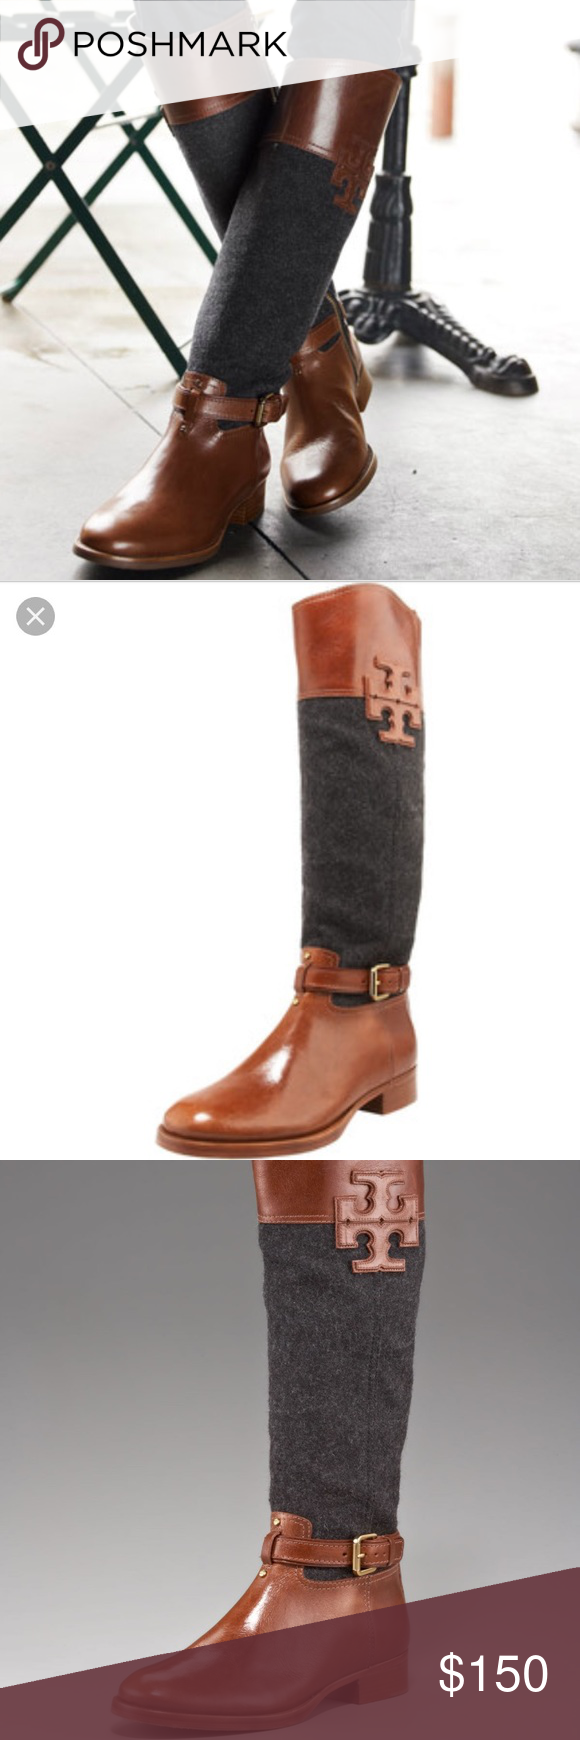 ecc2bdef19039 ... purchase tory burch flannel leather riding boots. size 9 but fit a 9.5  perfectly worn